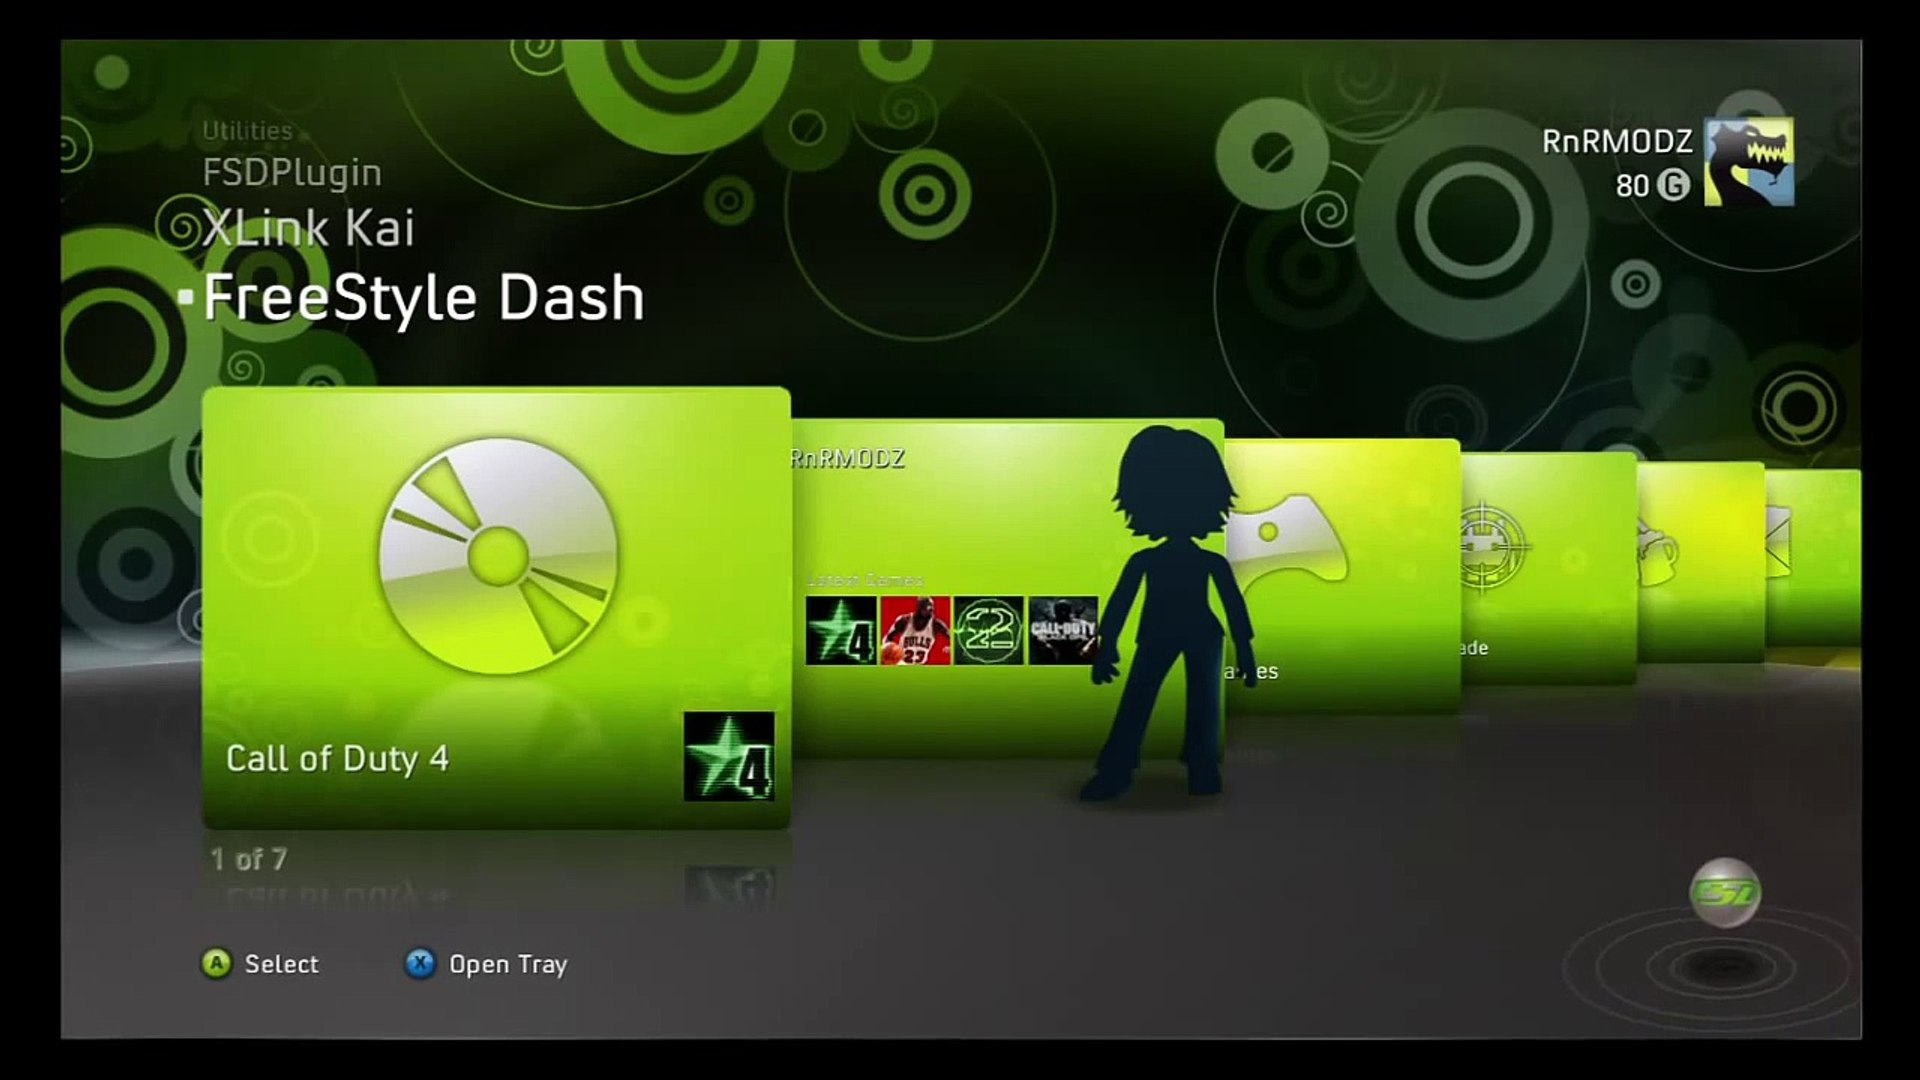 How to install a Game on your JTAG Xbox Using Freestyle Dash